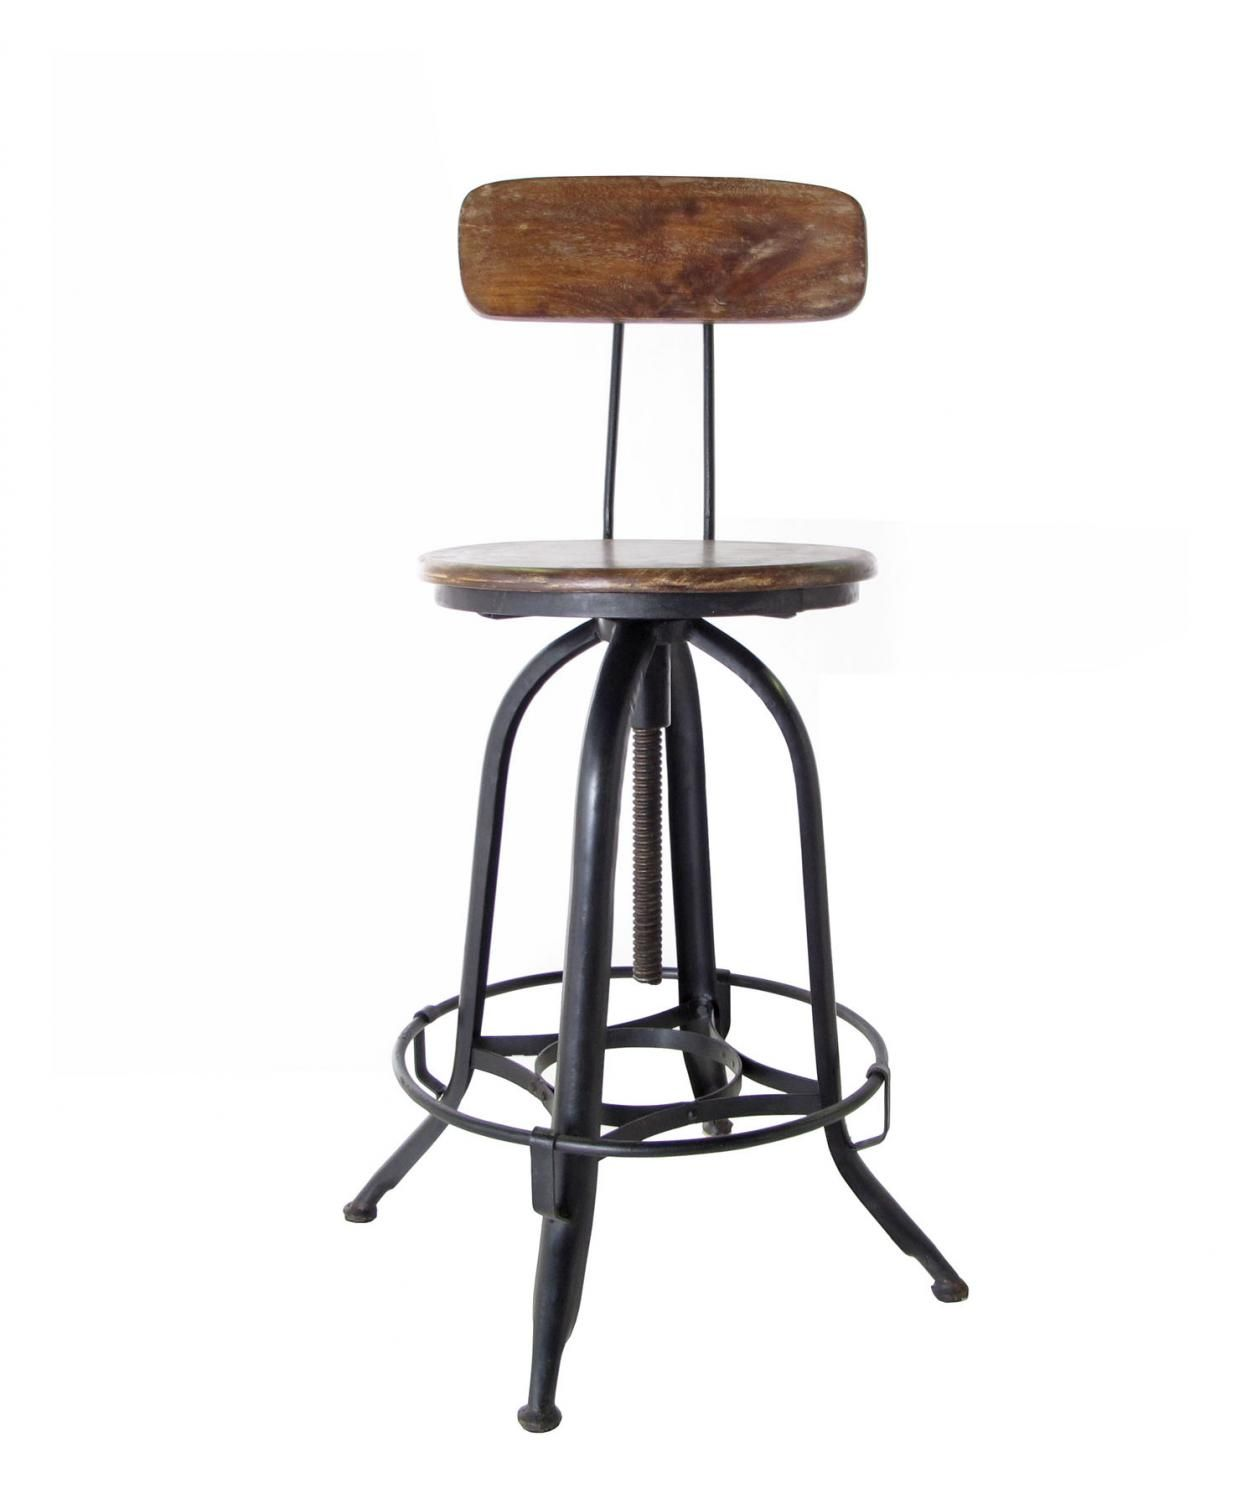 bar stools metal and wood. Product Details | Blue Ocean Traders Adjustable Wood And Metal Stool With Back. When Seat Bar Stools W